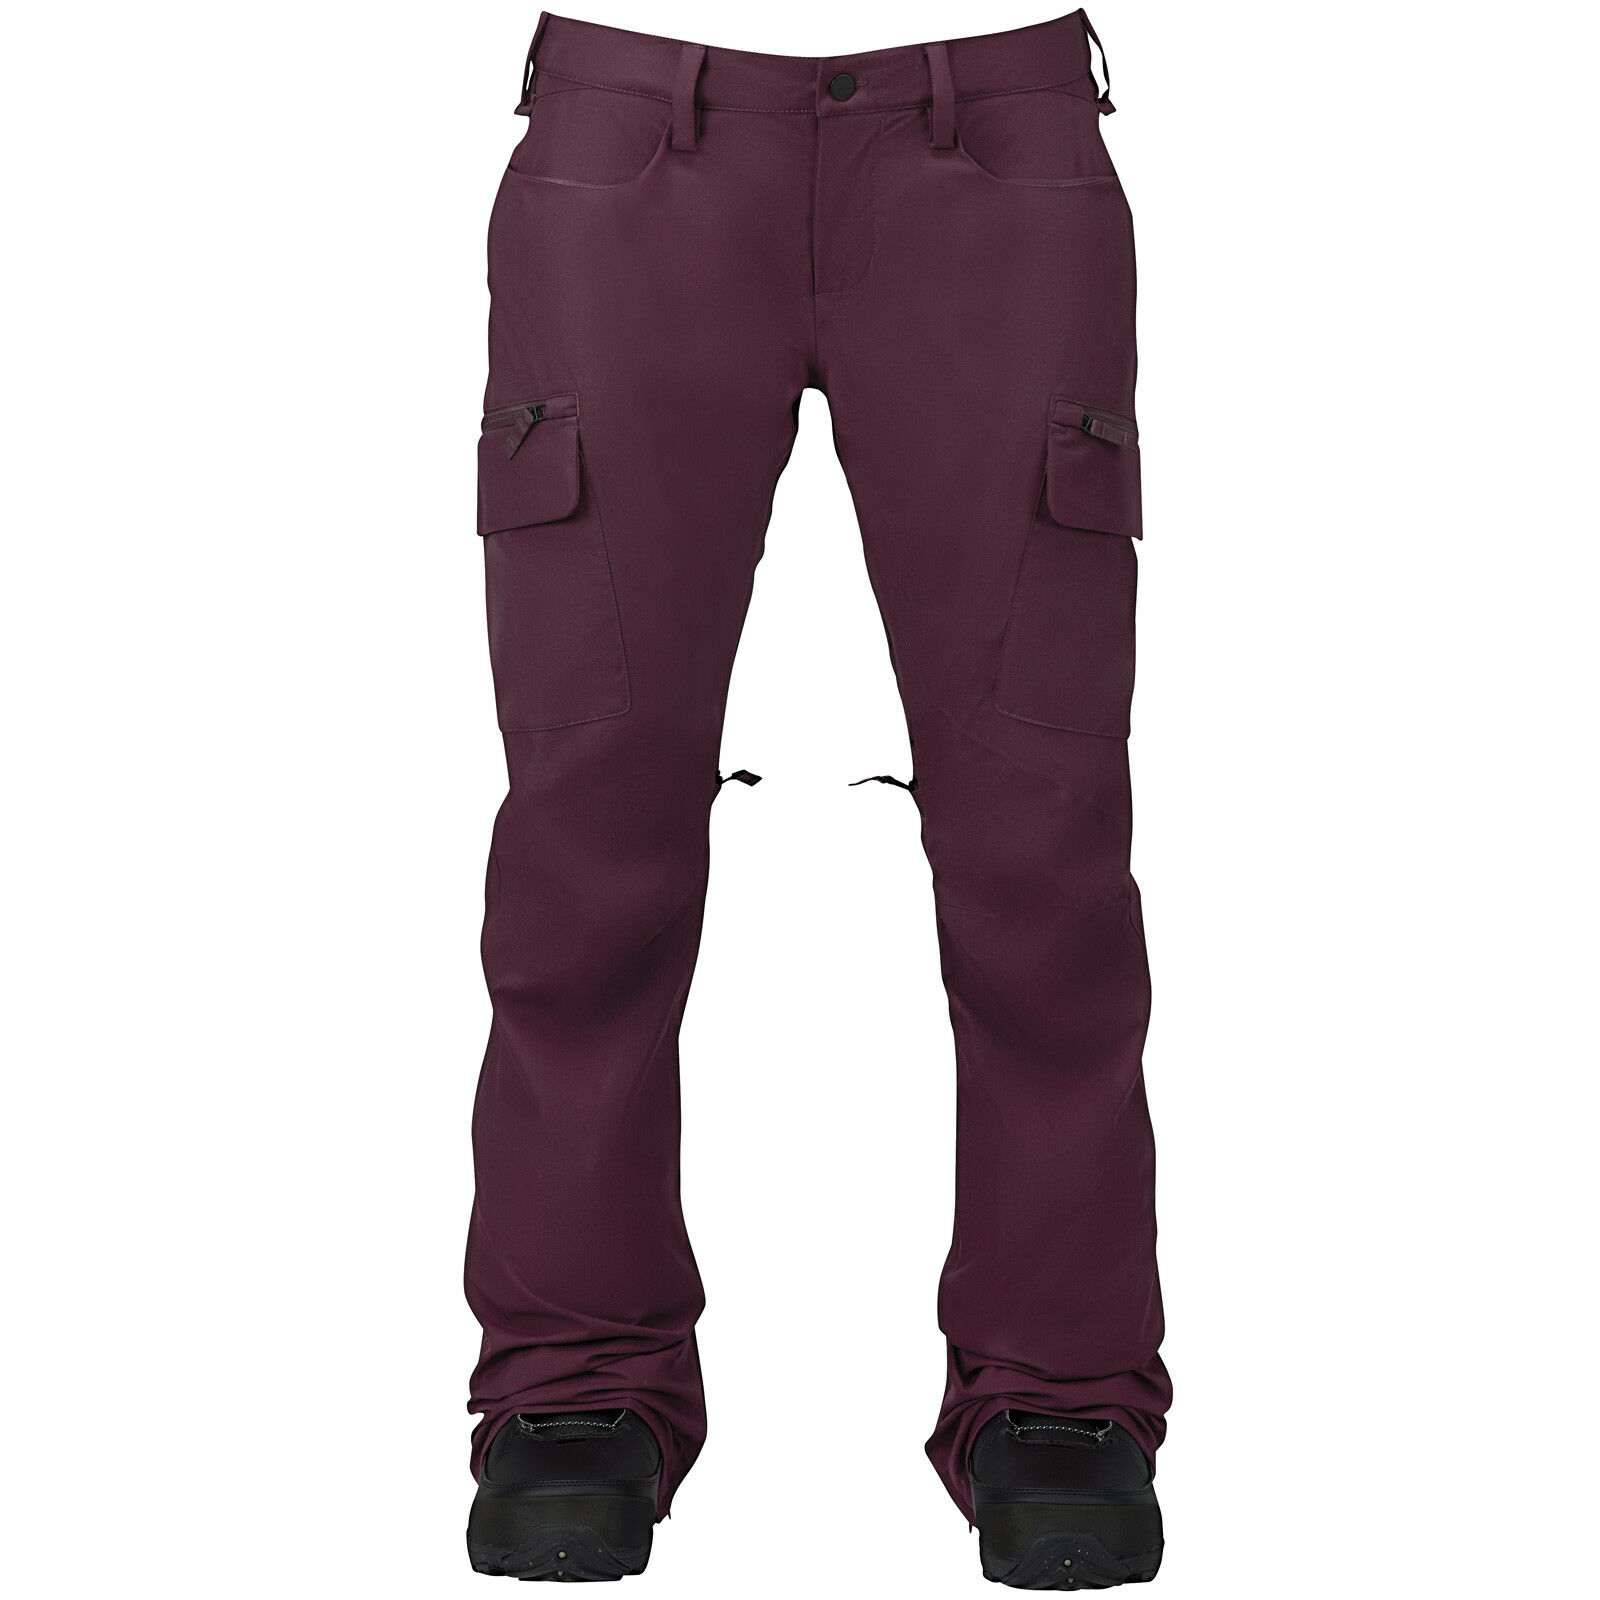 Burton Gloria Shorts Pant Women's Snowboard Ski Functional Snow Trousers